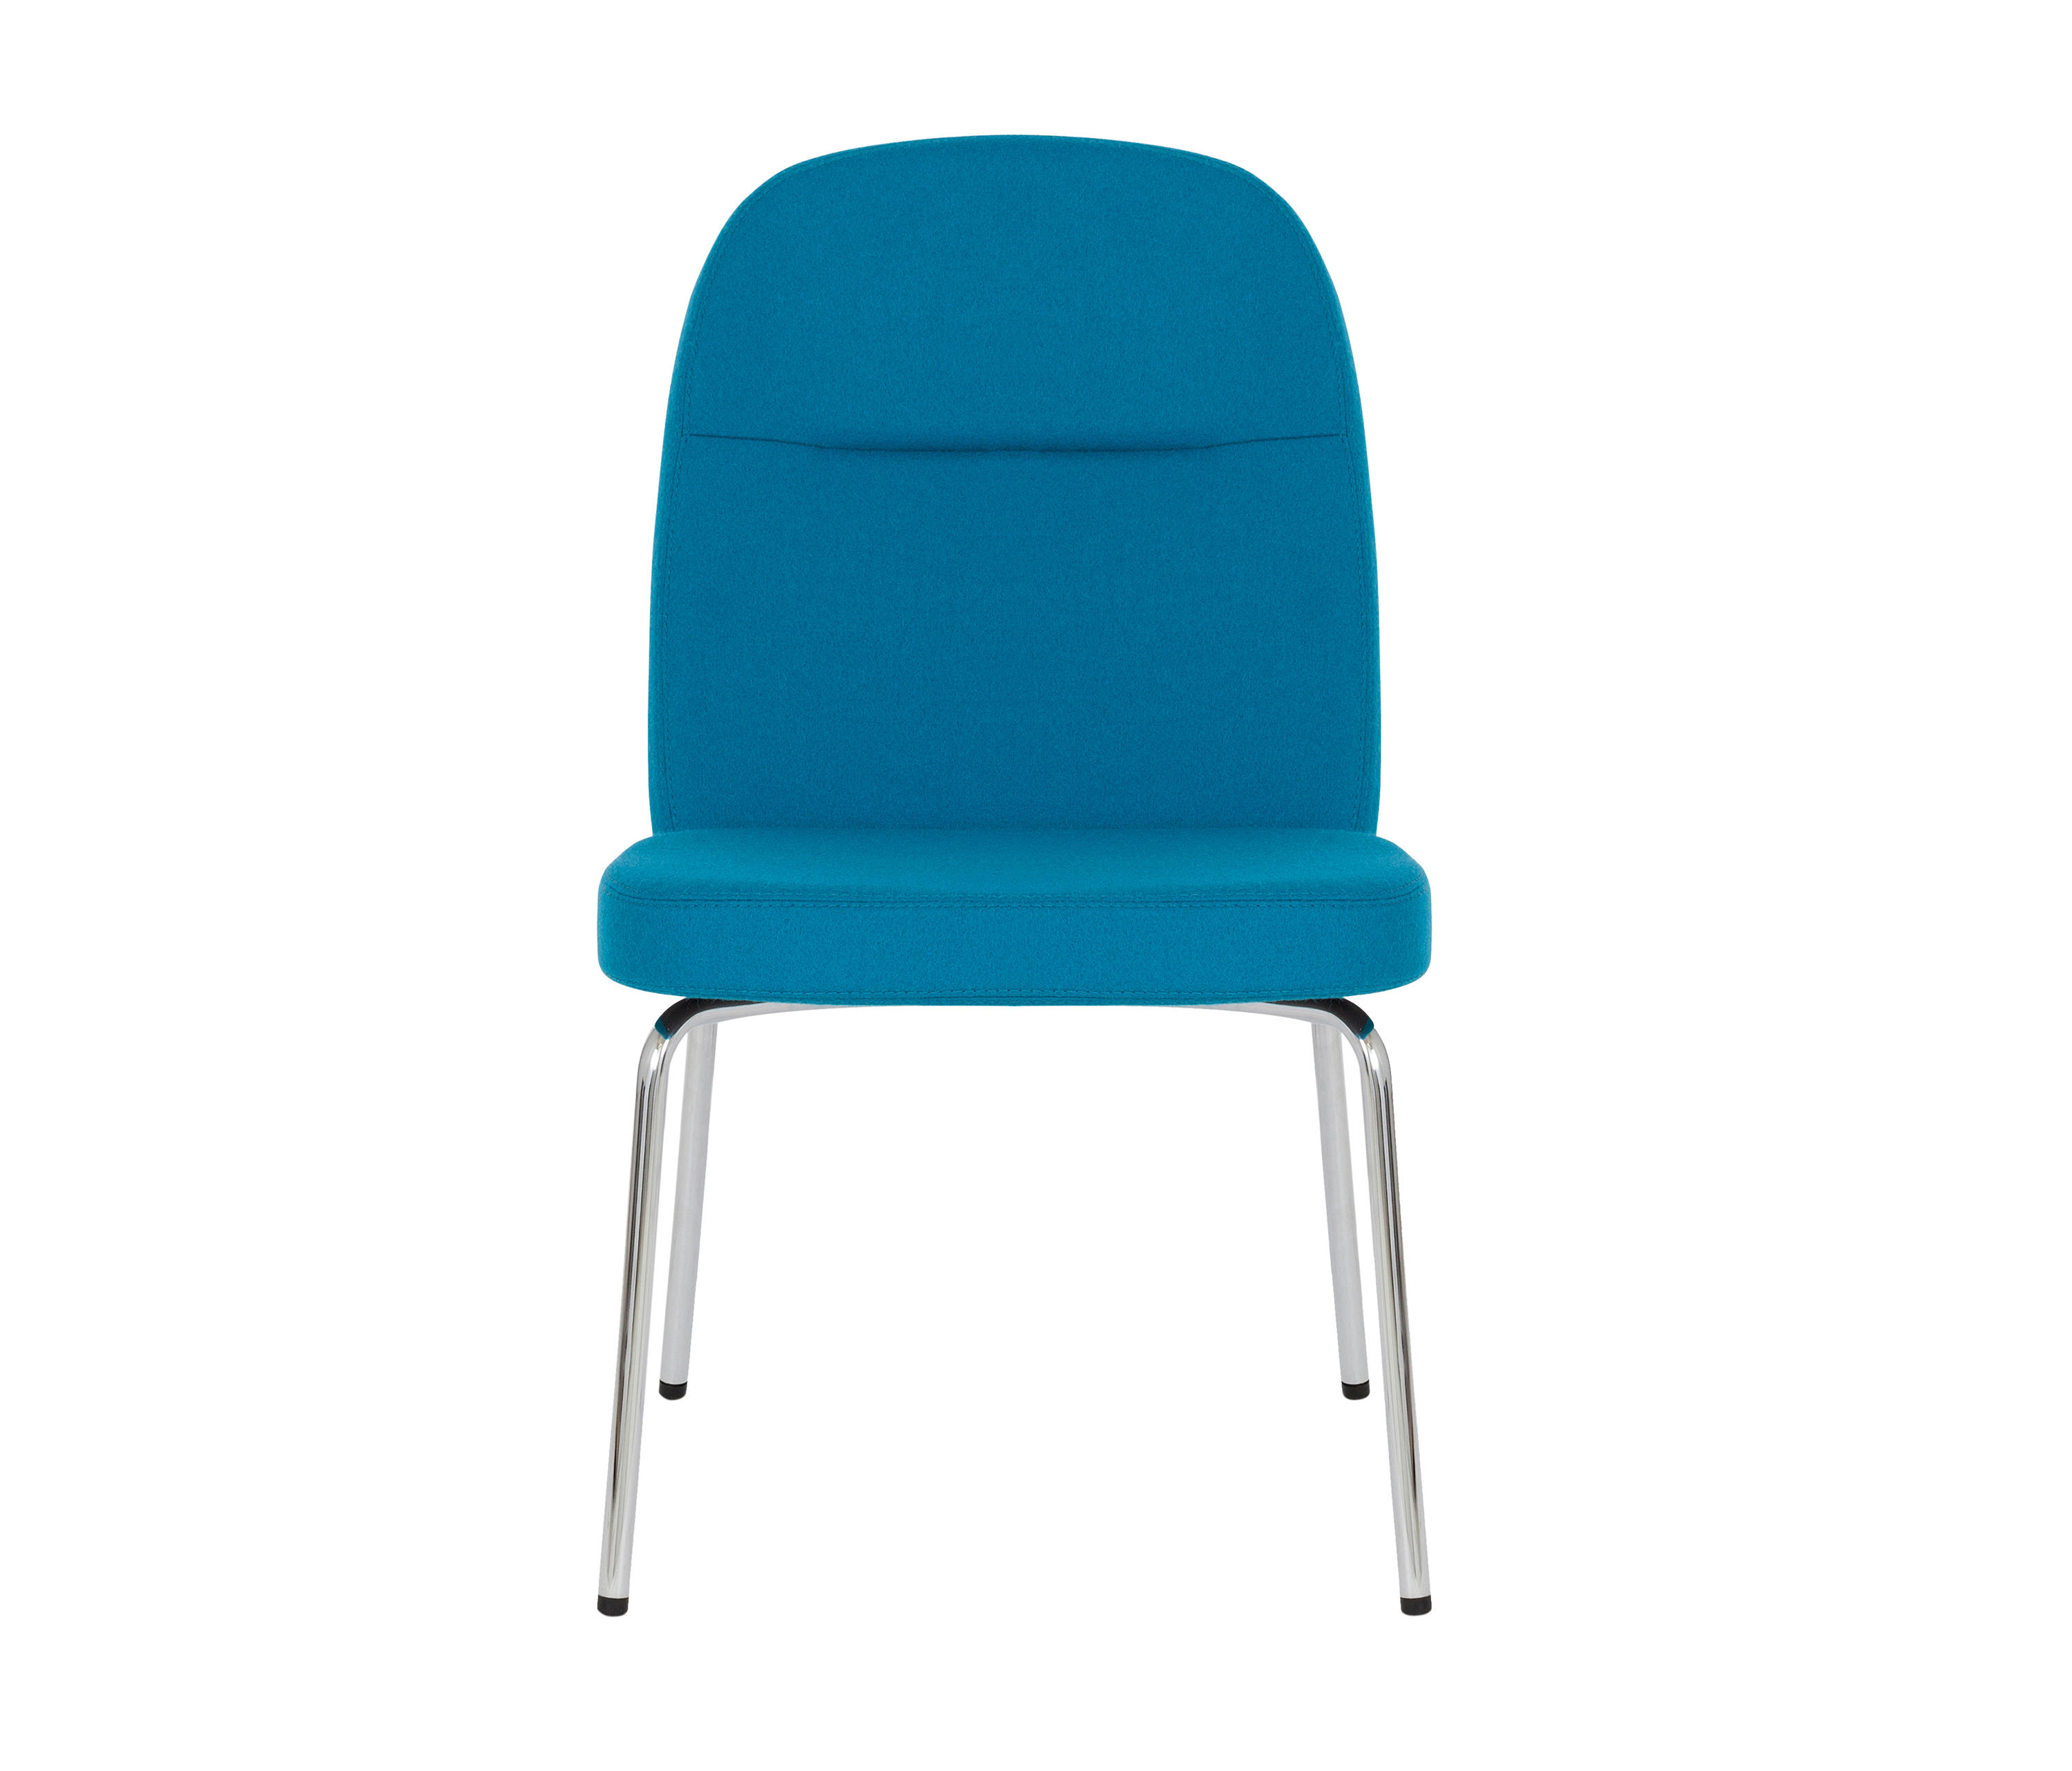 Collo 10162 Chairs From Keilhauer Architonic